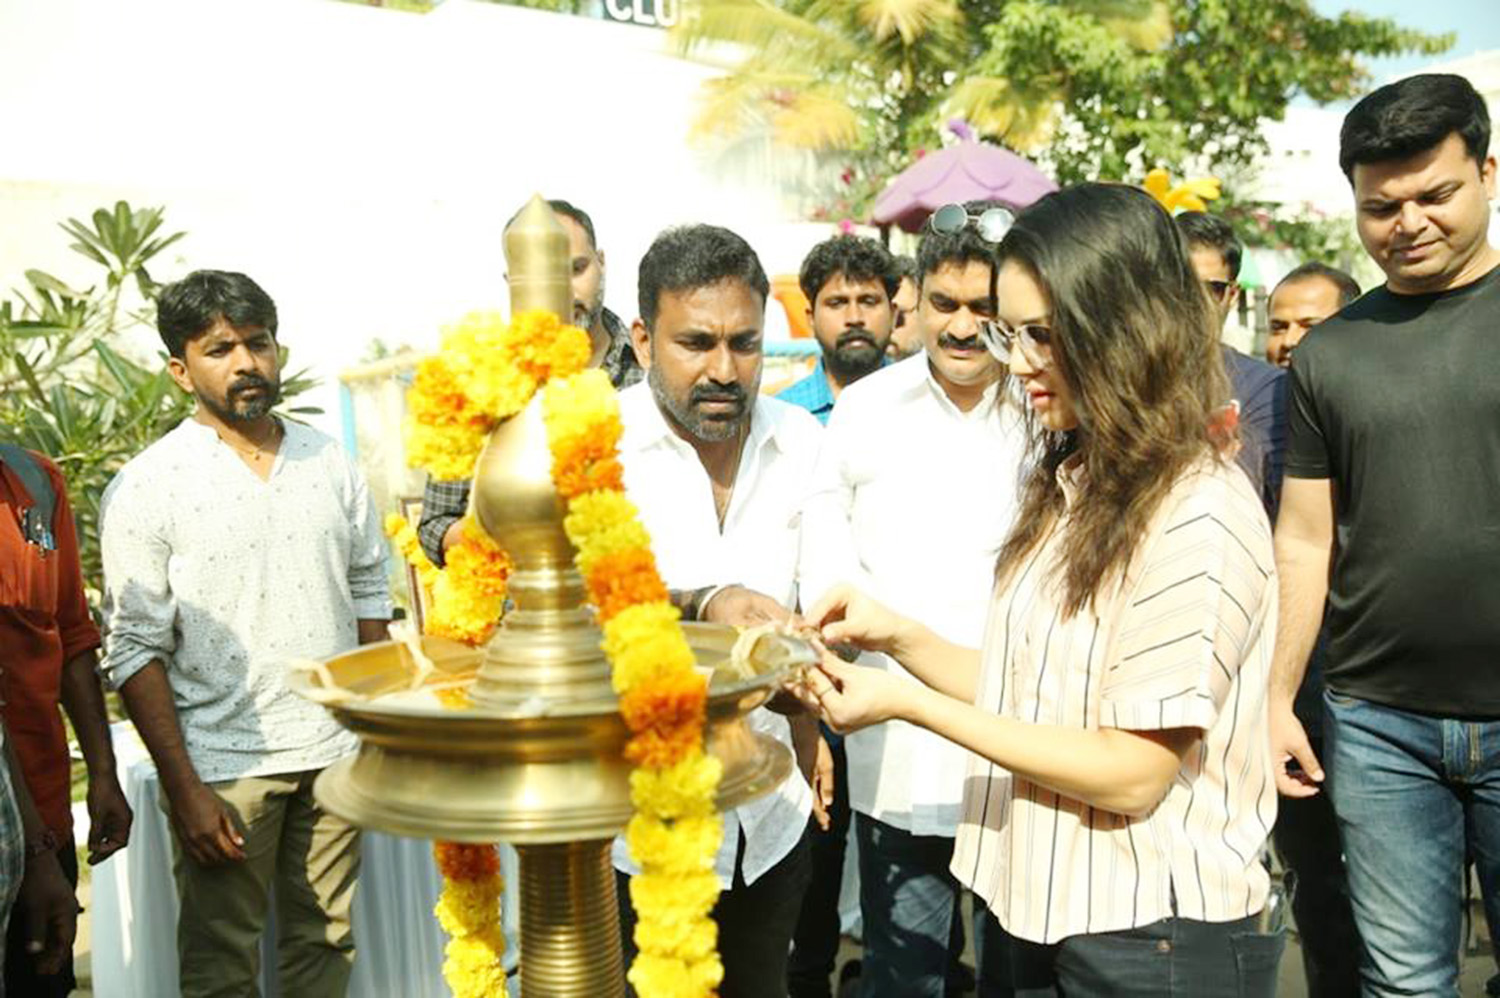 Rangeela,sunny leone,actress sunny leone.sunny leone's malayalam movie,rangeela malayalam movie pooja stills,sunny leone's first malayalam movie,sunny leone's new malayalam movie,sunny leone's rangeela pooja ceremony,rangeela pooja ceremony stills